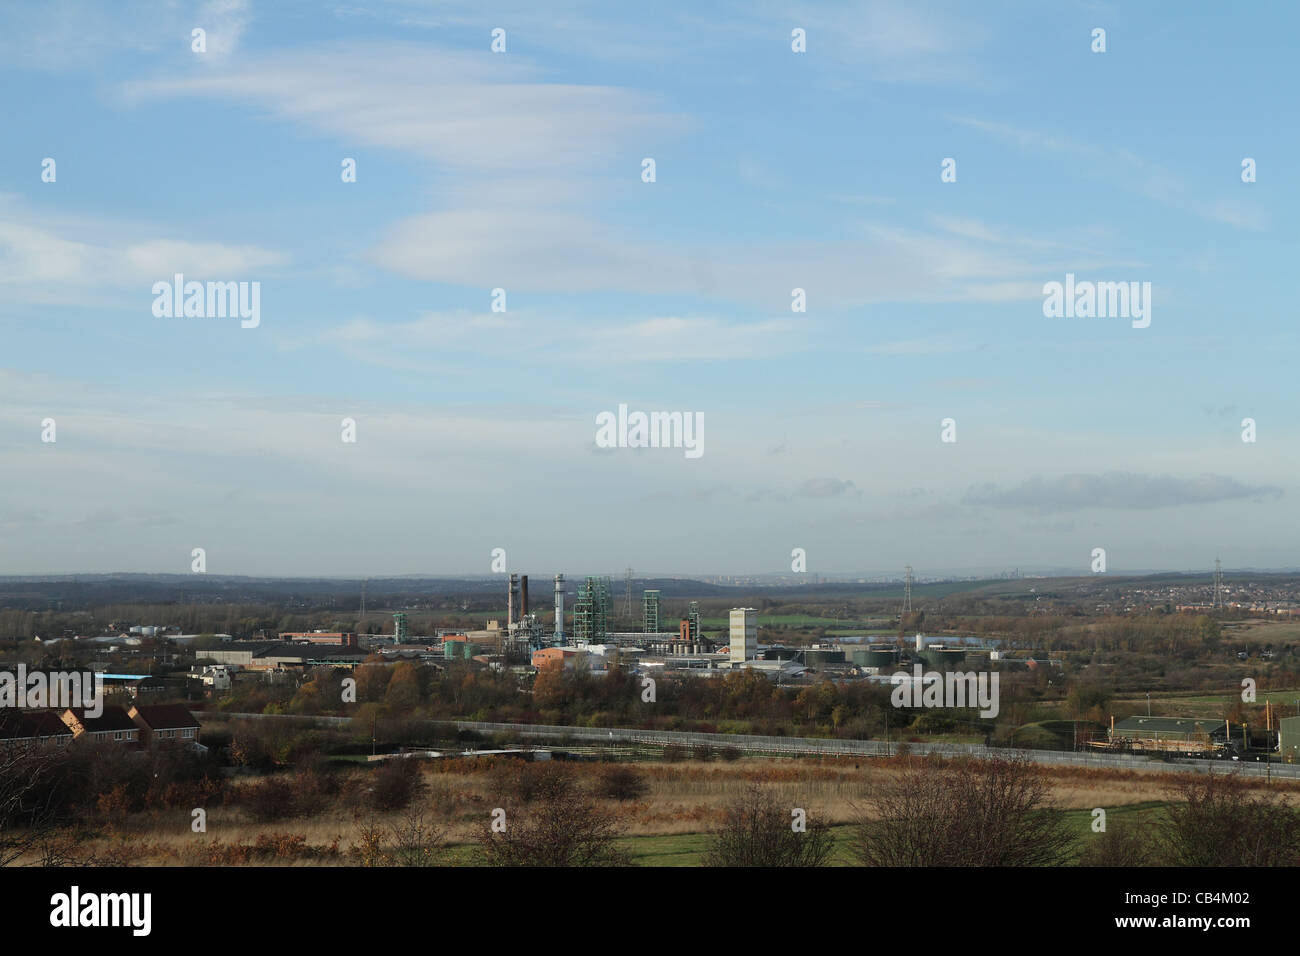 industrial factory chemical works castleford - Stock Image